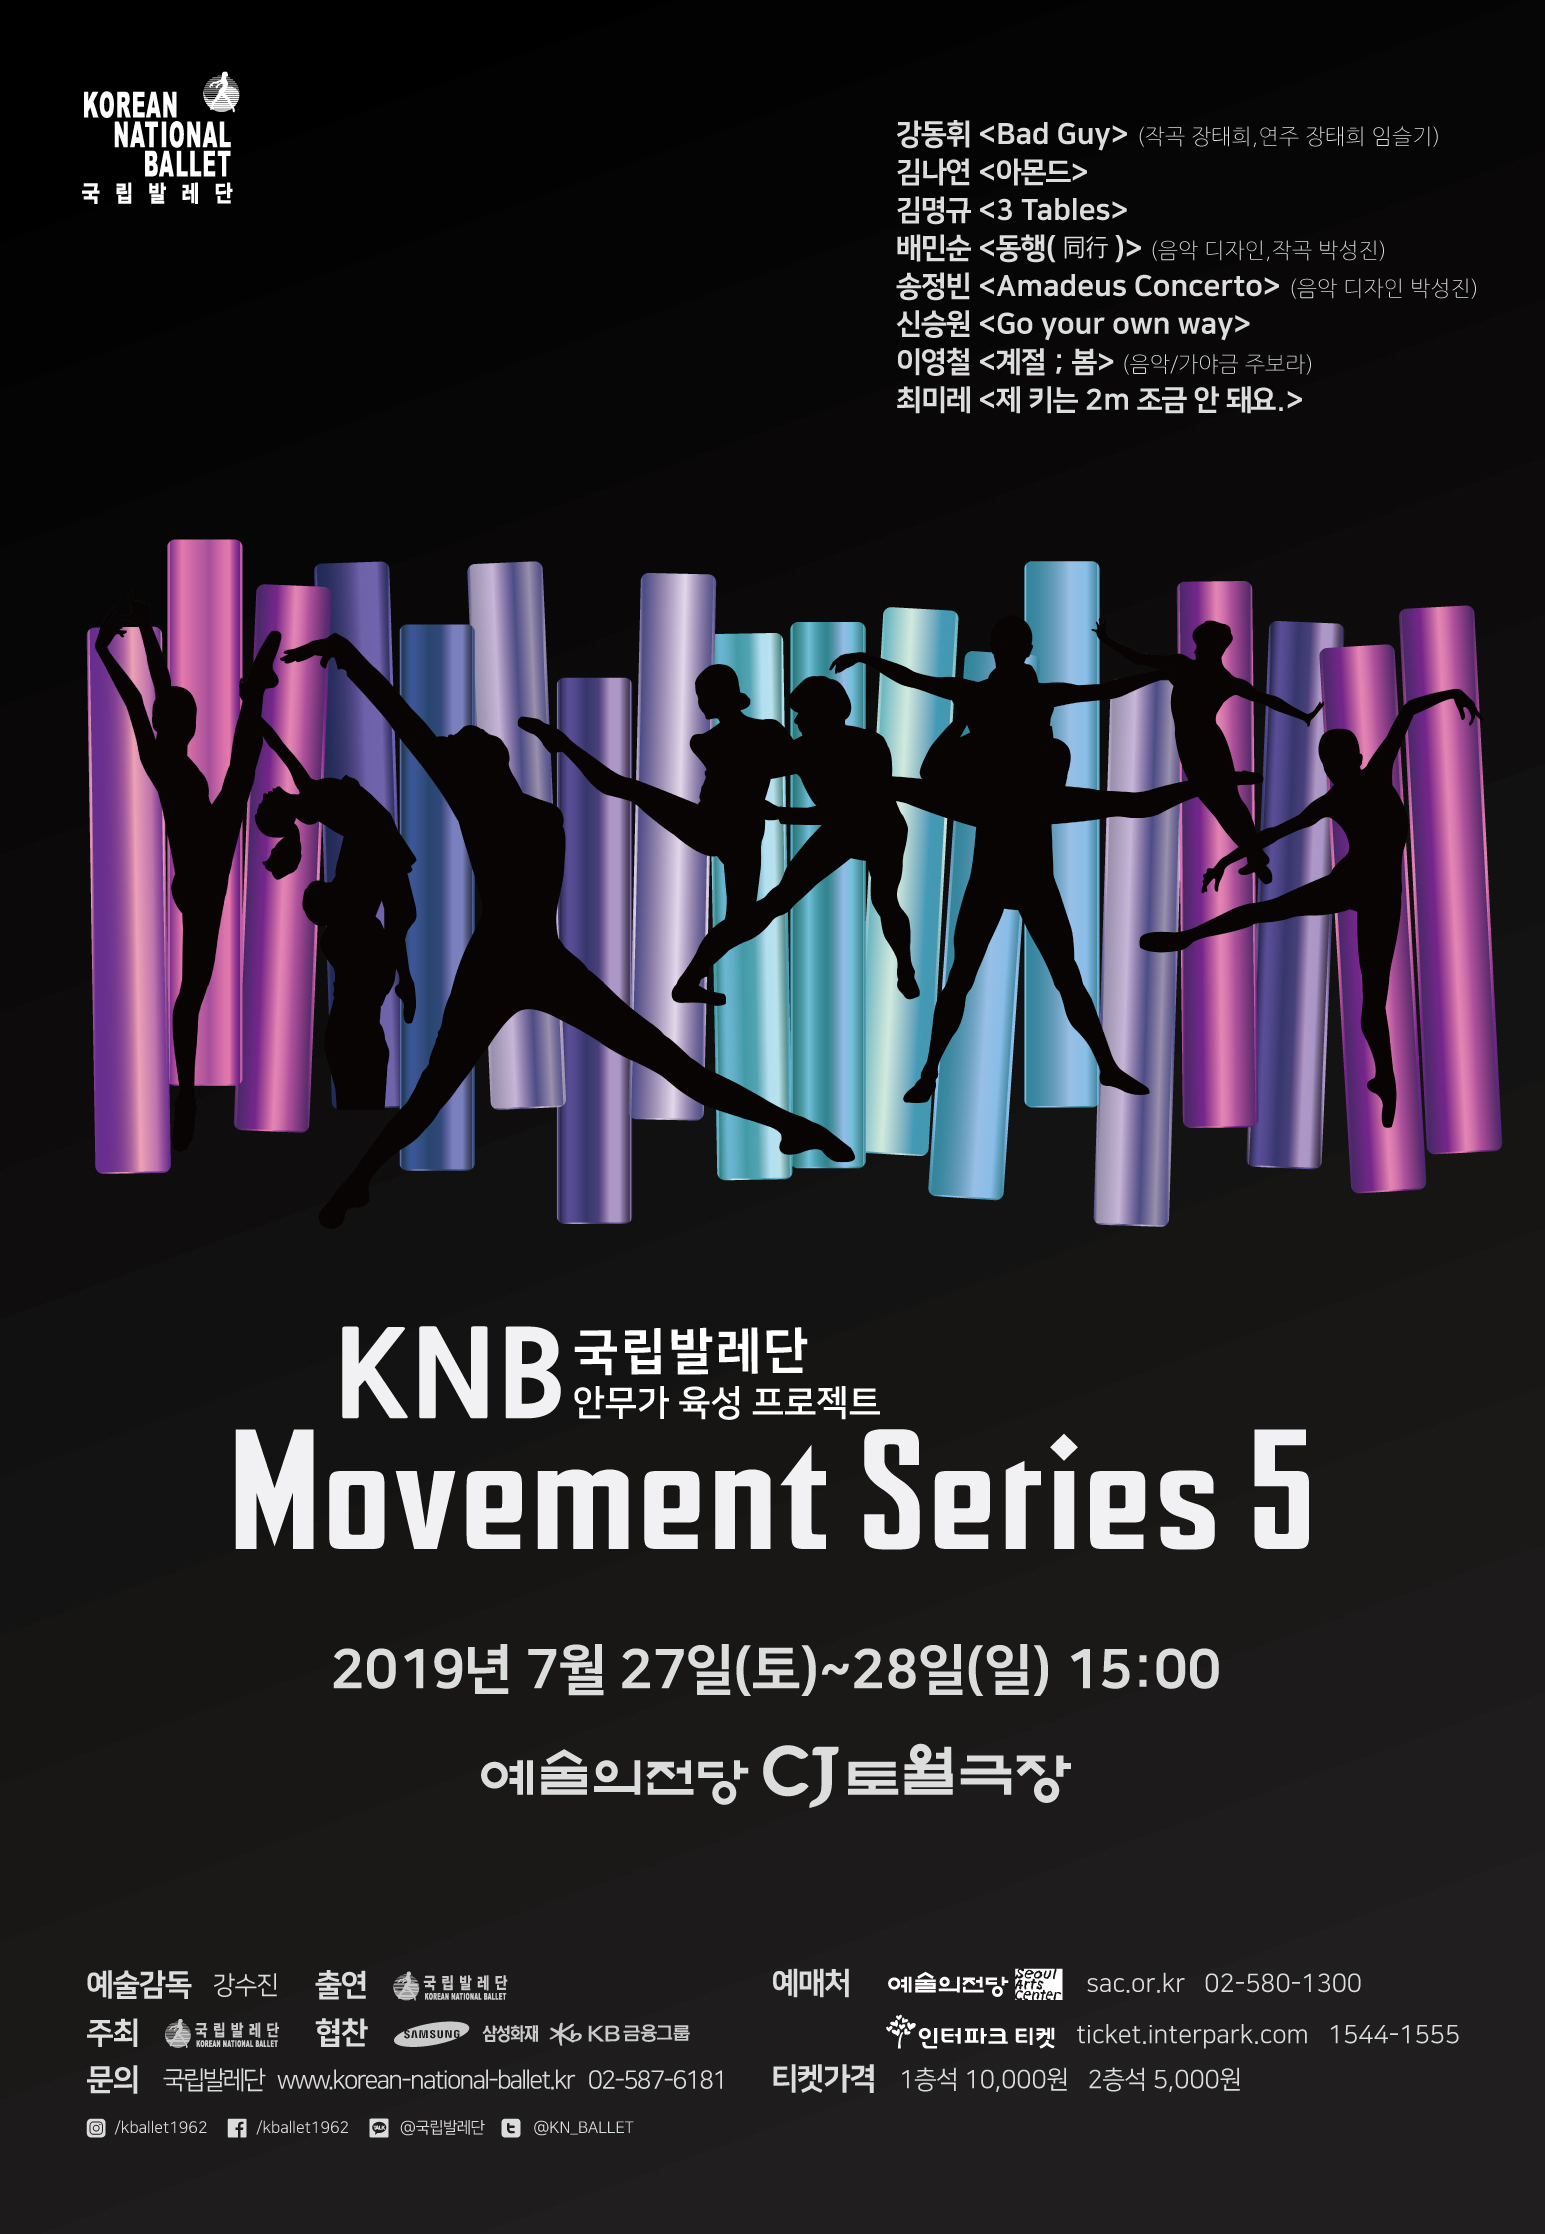 KNB Movement Series 5